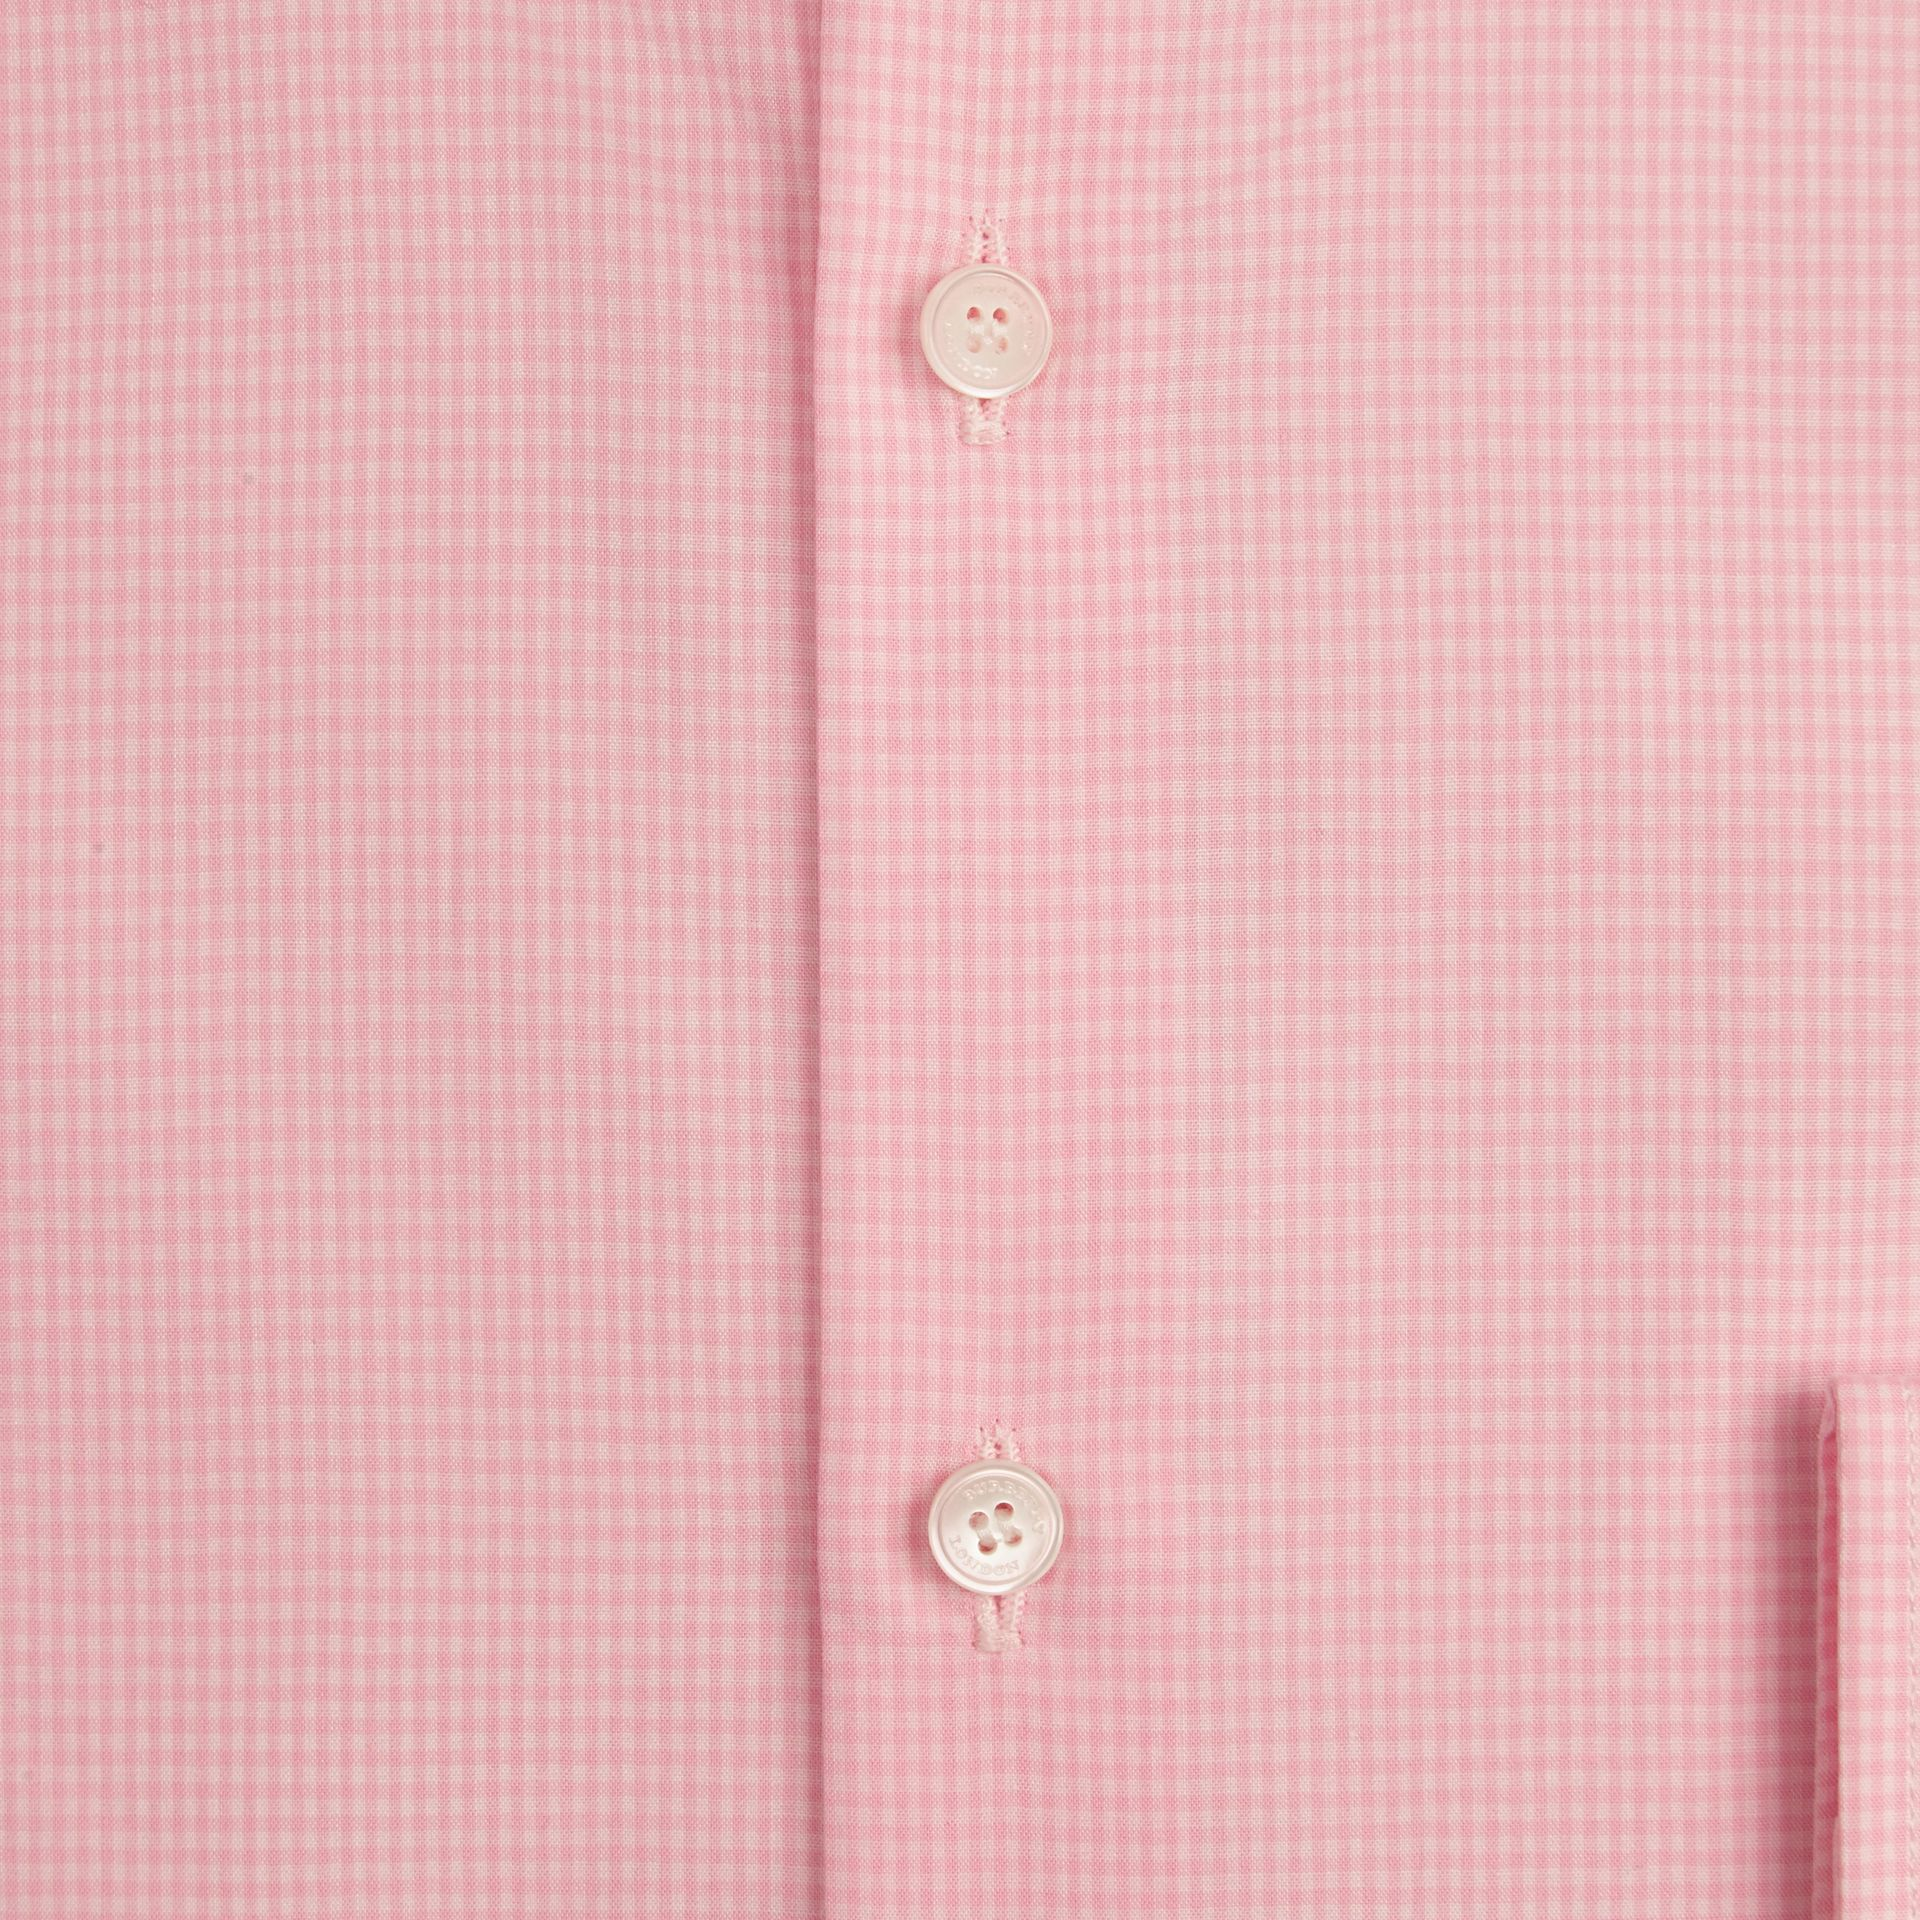 City pink Slim Fit Button-down Collar Gingham Cotton Poplin Shirt City Pink - gallery image 2